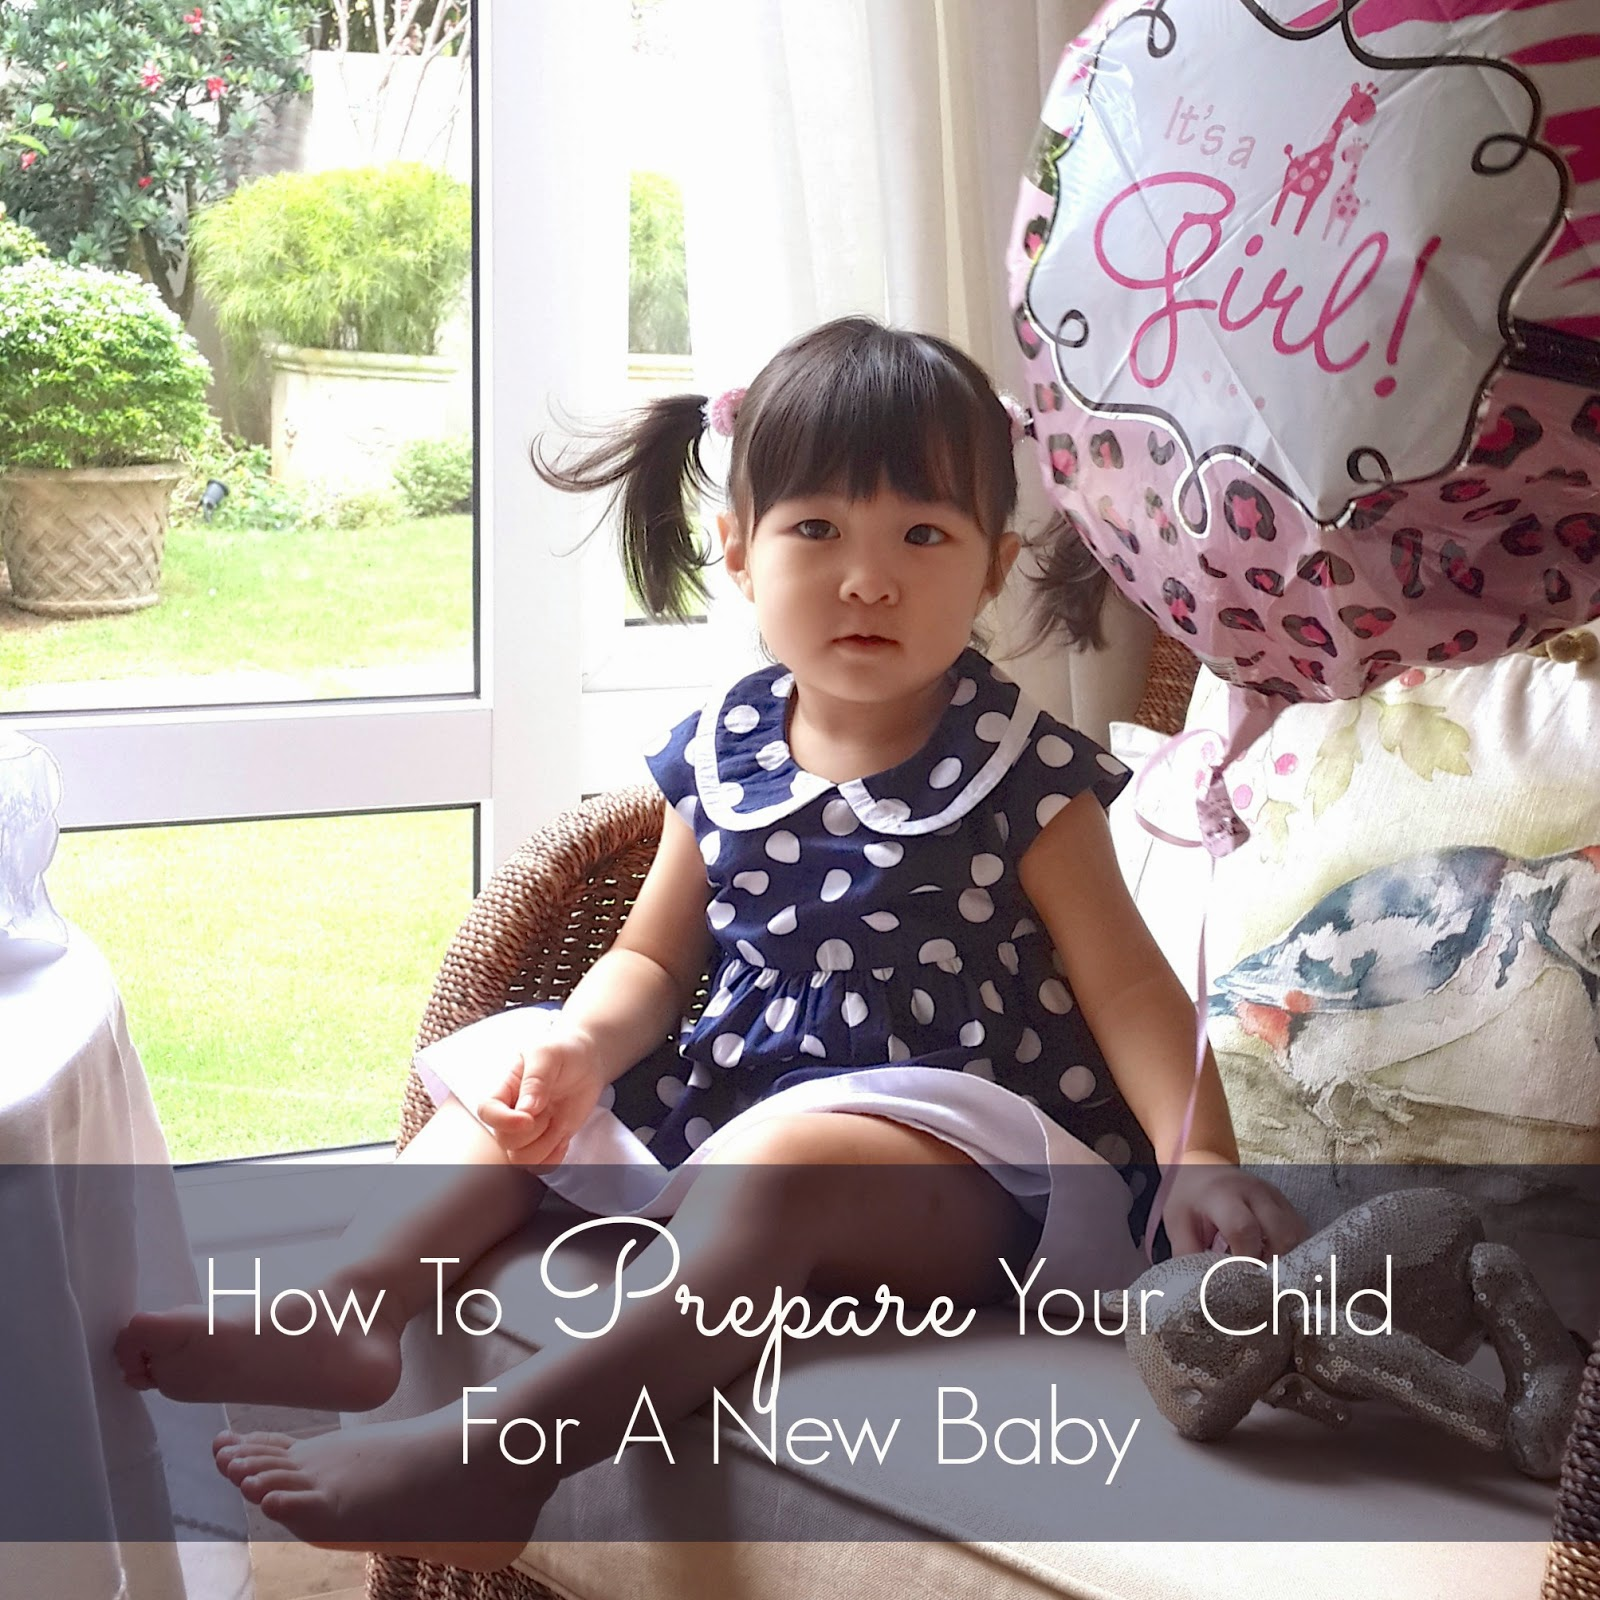 How best to prepare a child for passing the exam 38